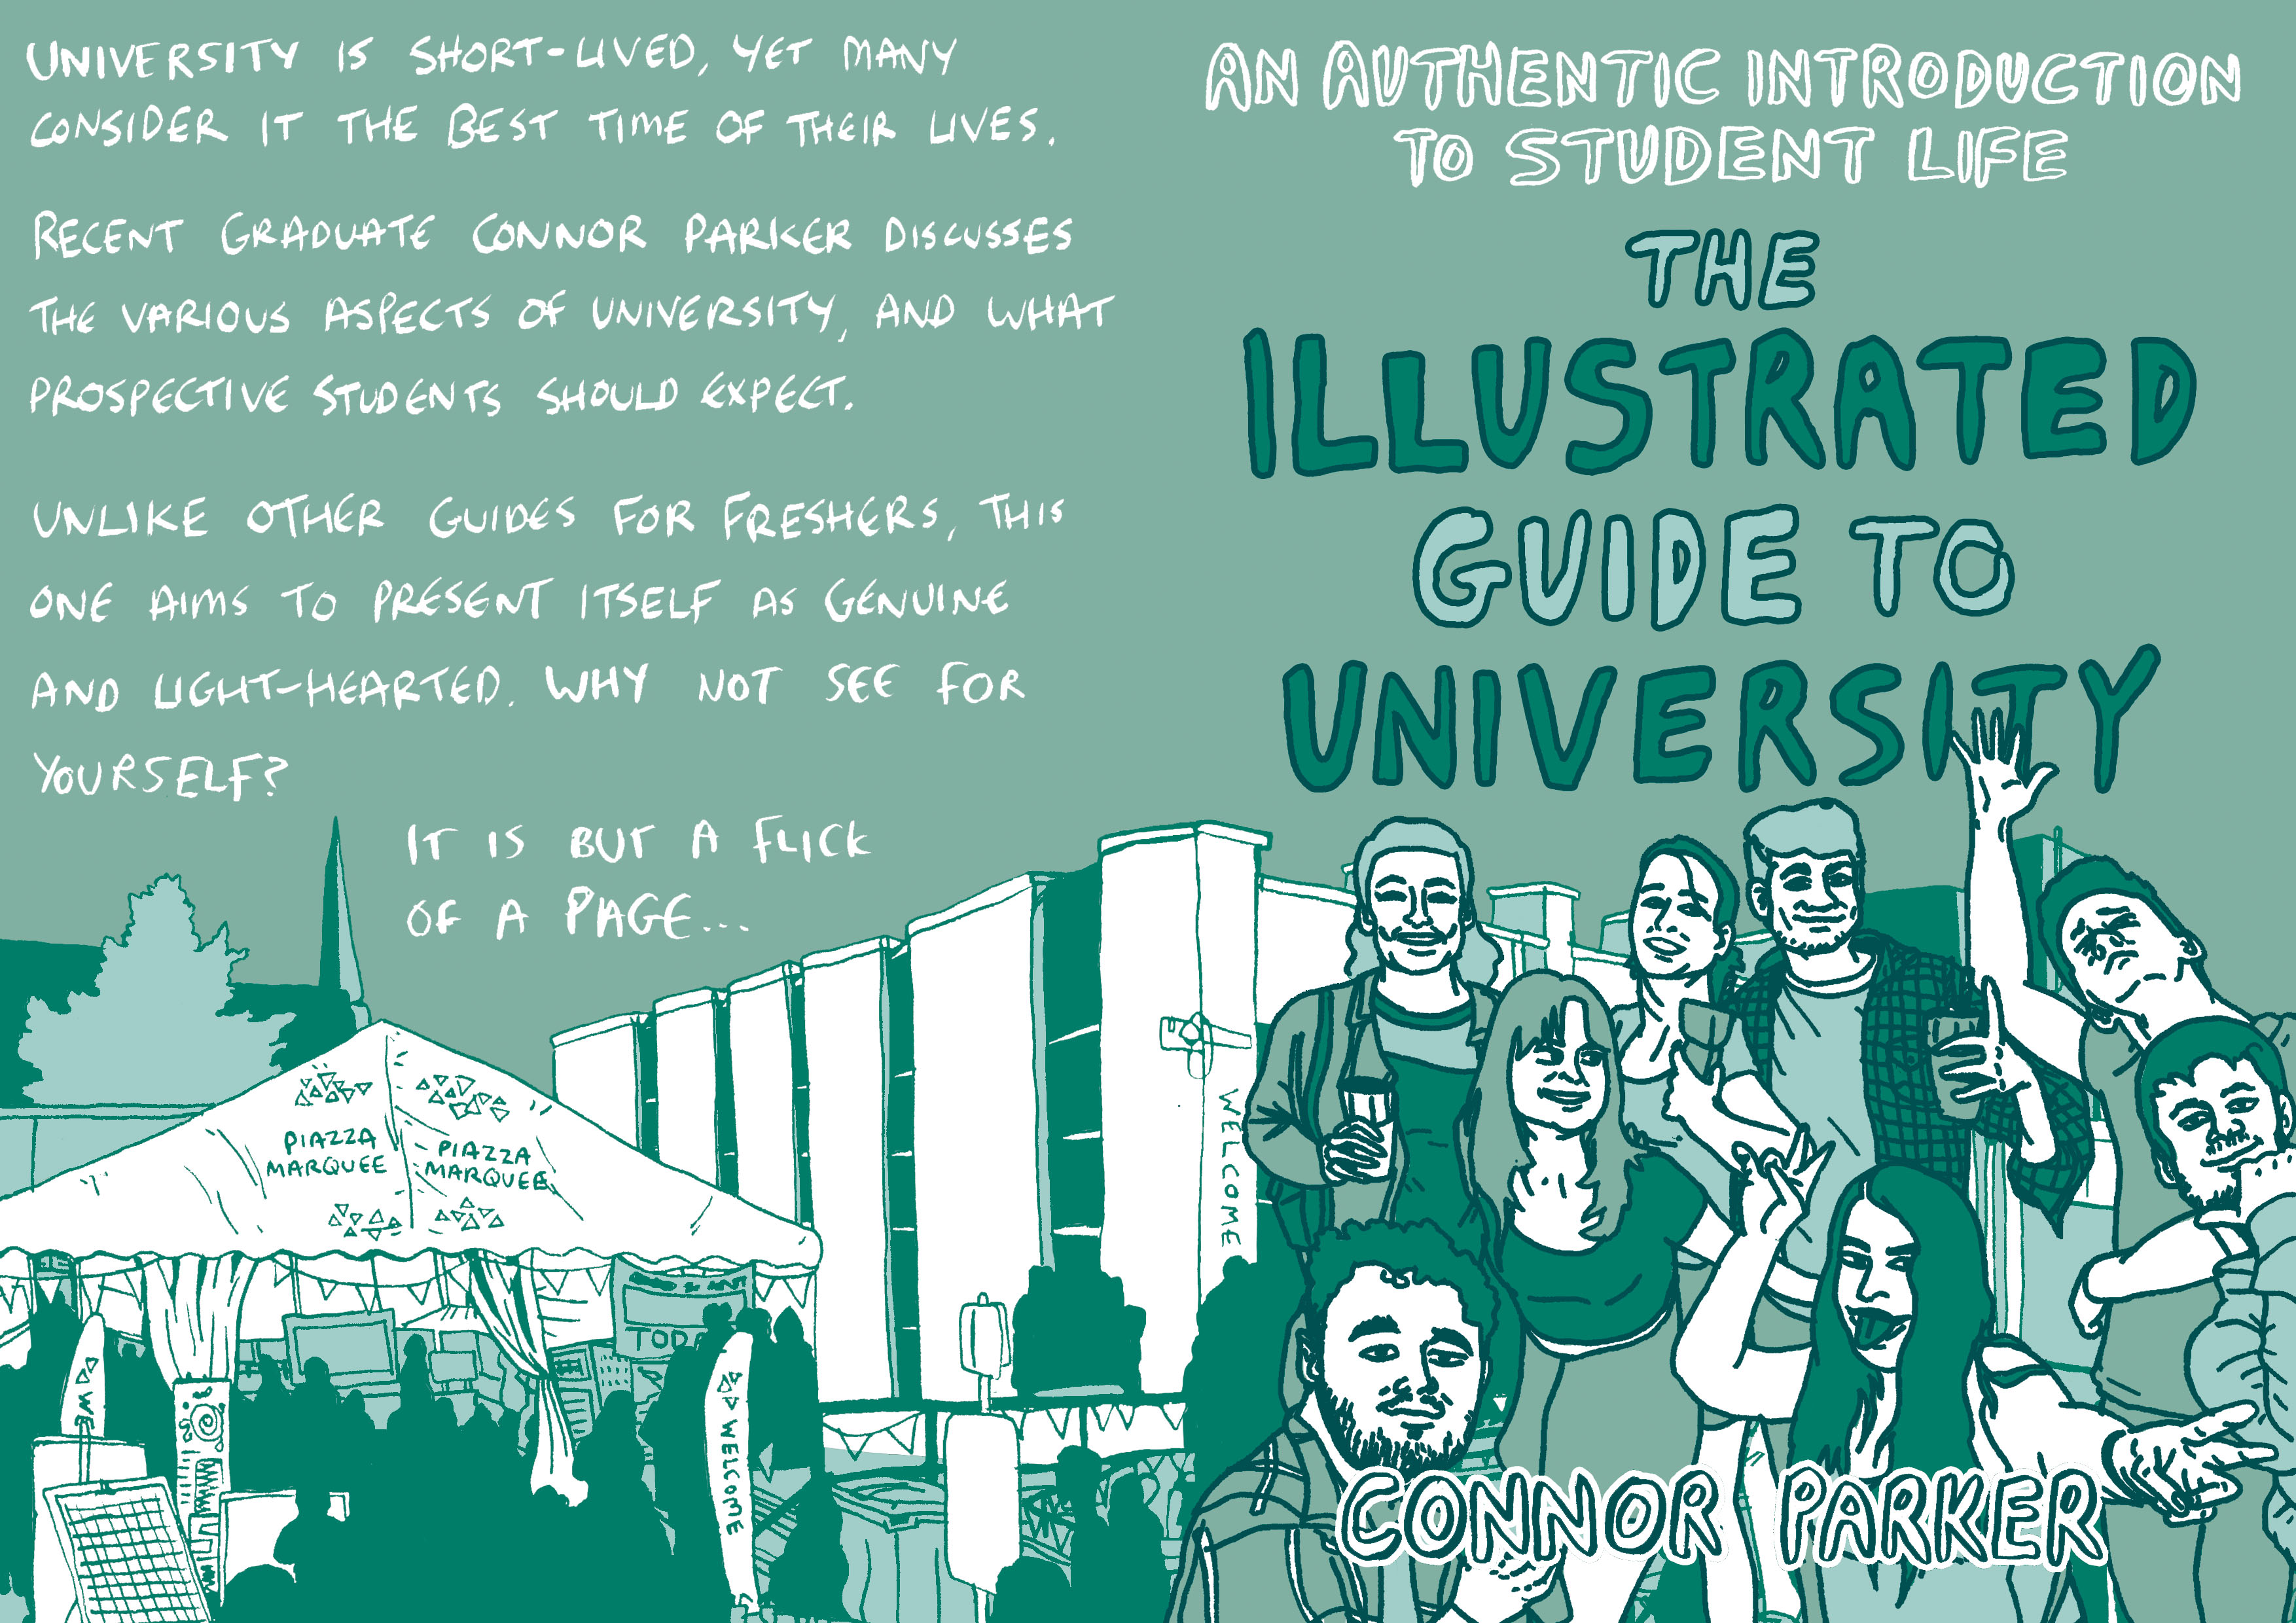 The Illustrated Guide to University Image